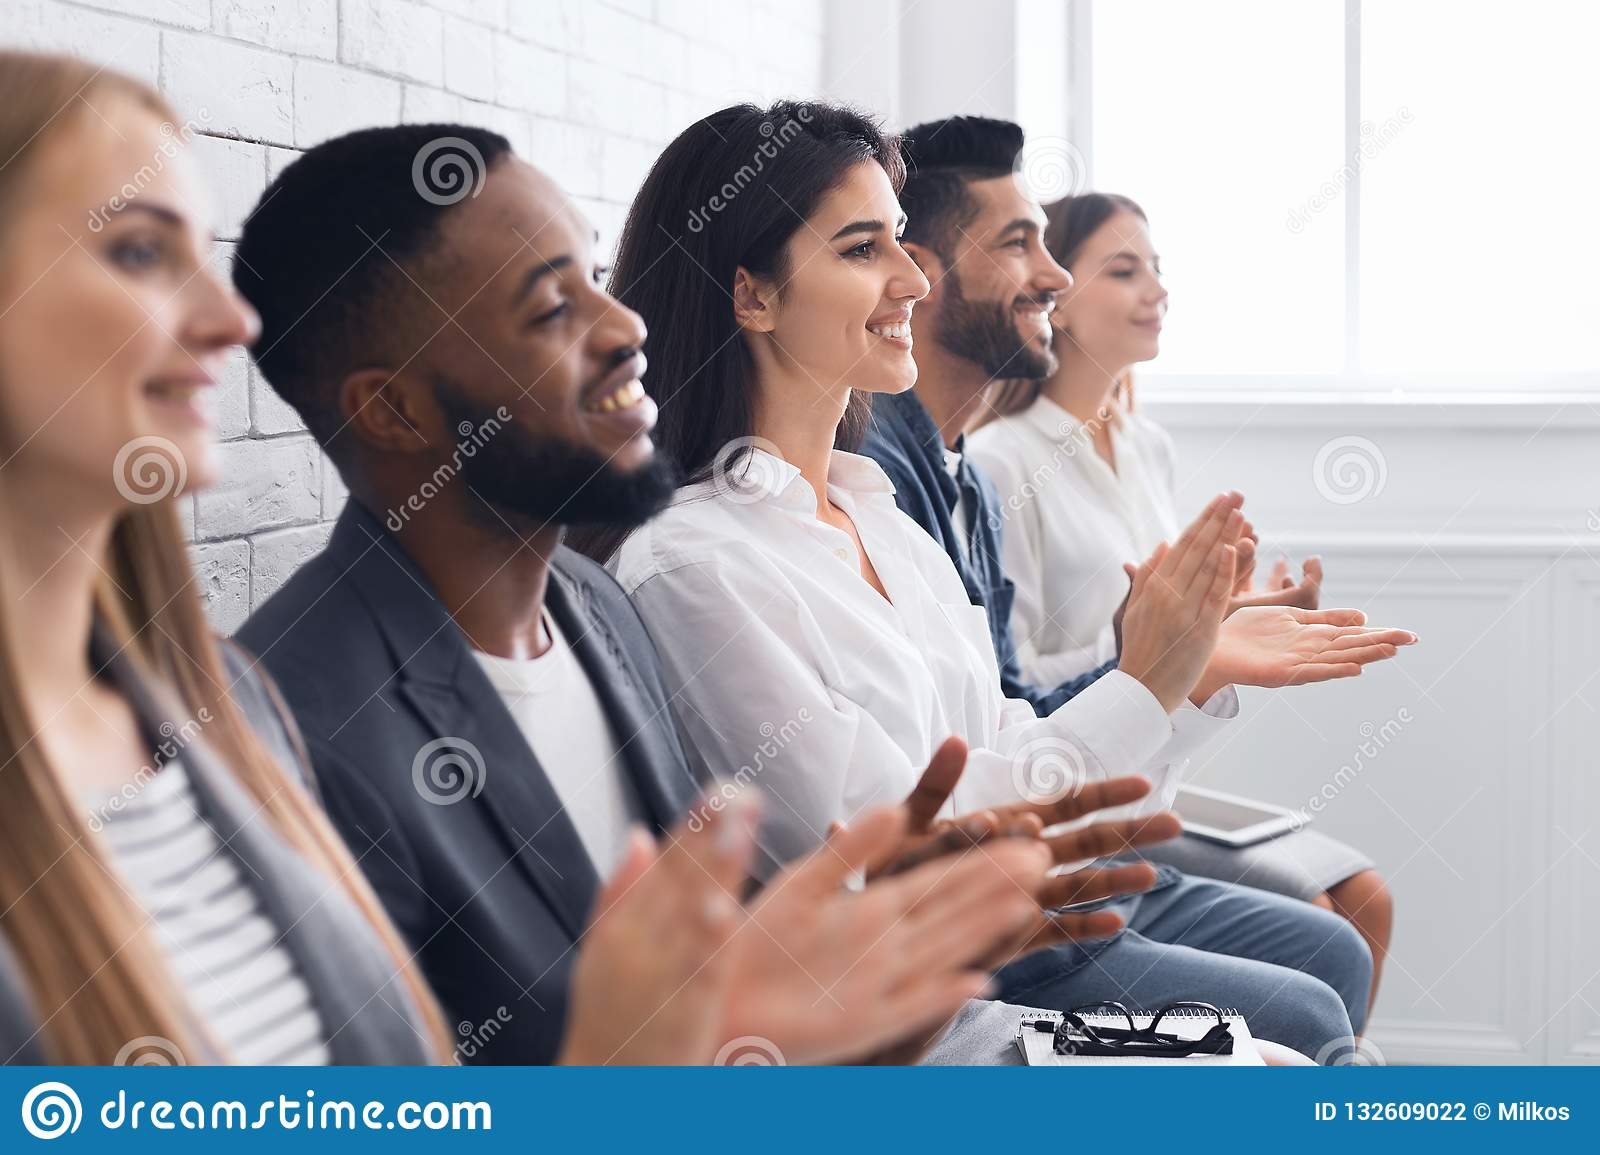 Group of businesspeople clapping hands at meeting